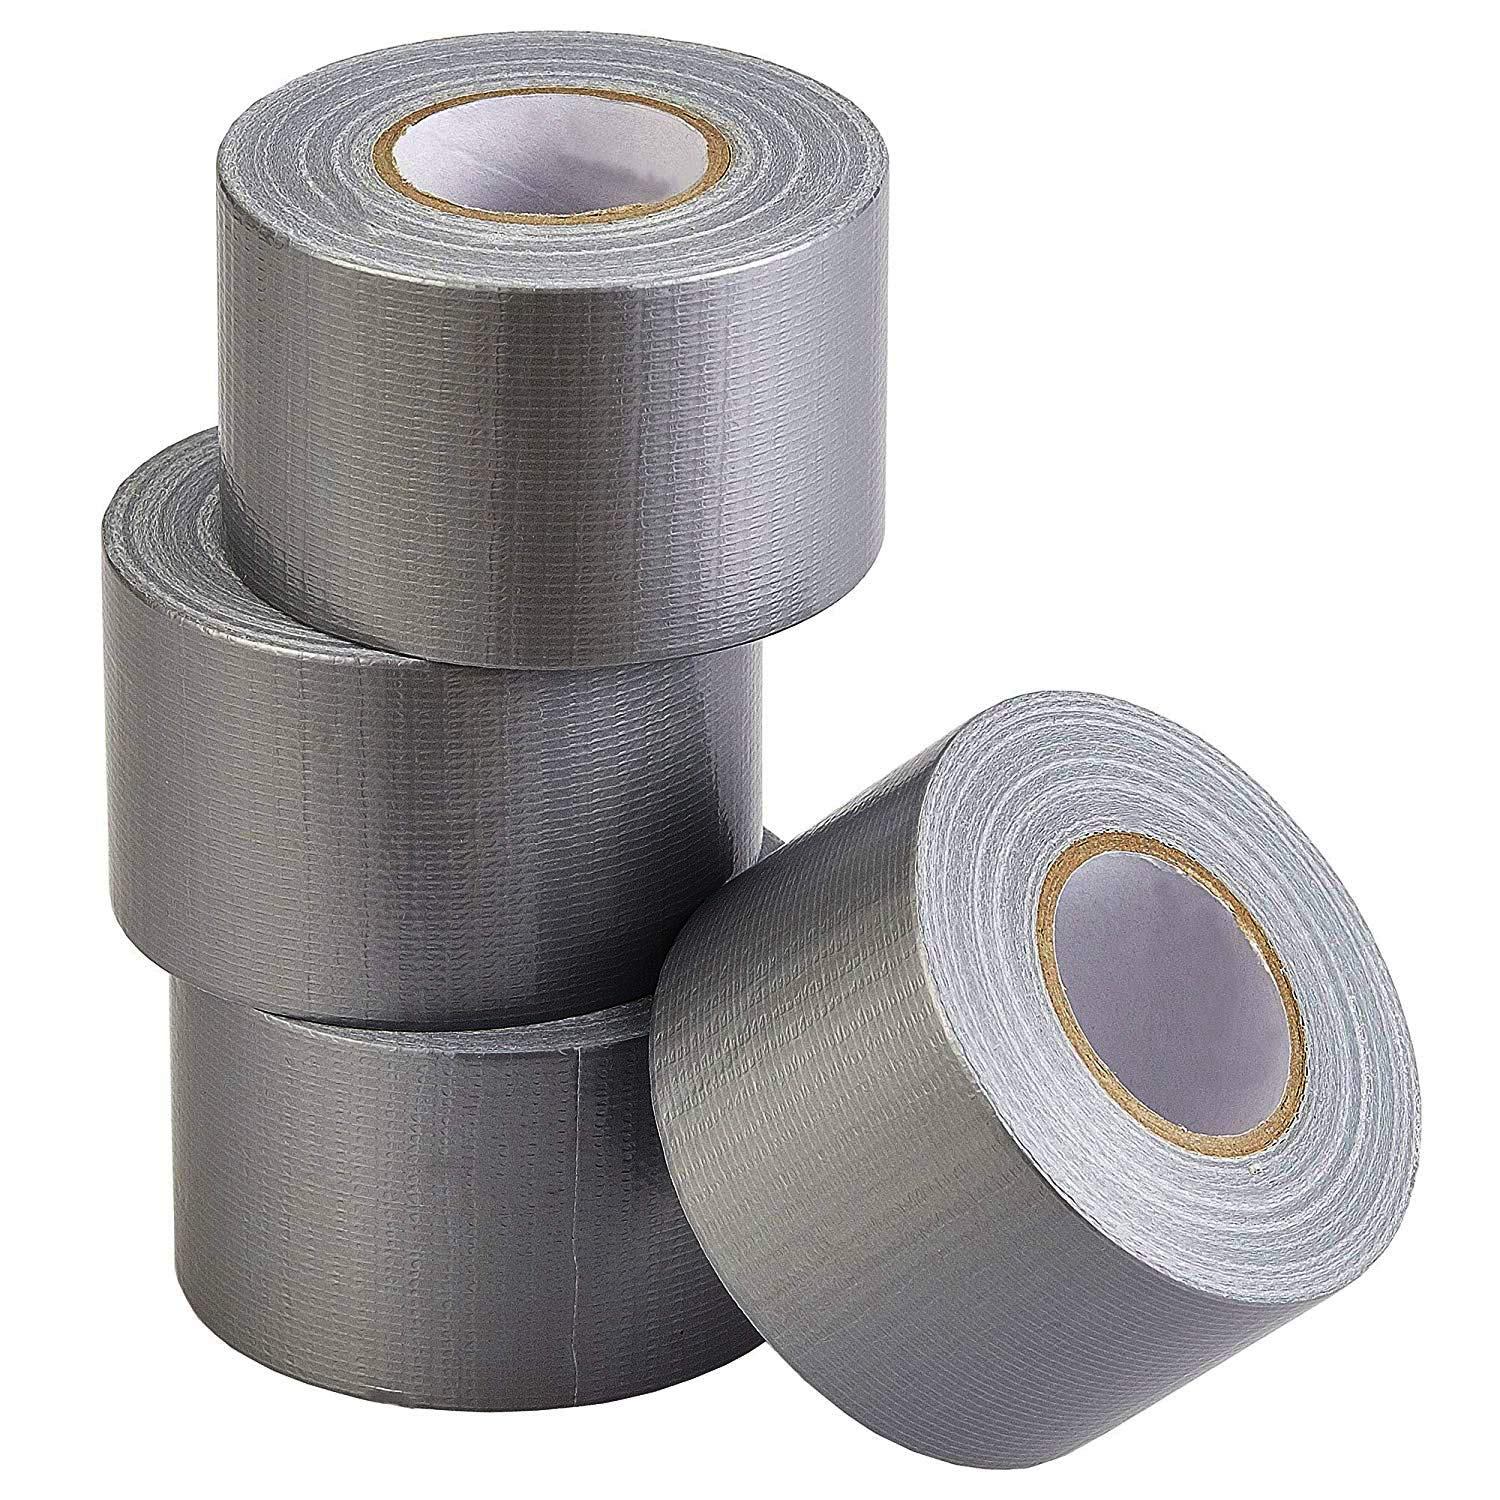 """Duct Tape 2/"""" by 10 yards each Silver Adhesive Tape New Sealed ~ 2 Rolls of Tape"""